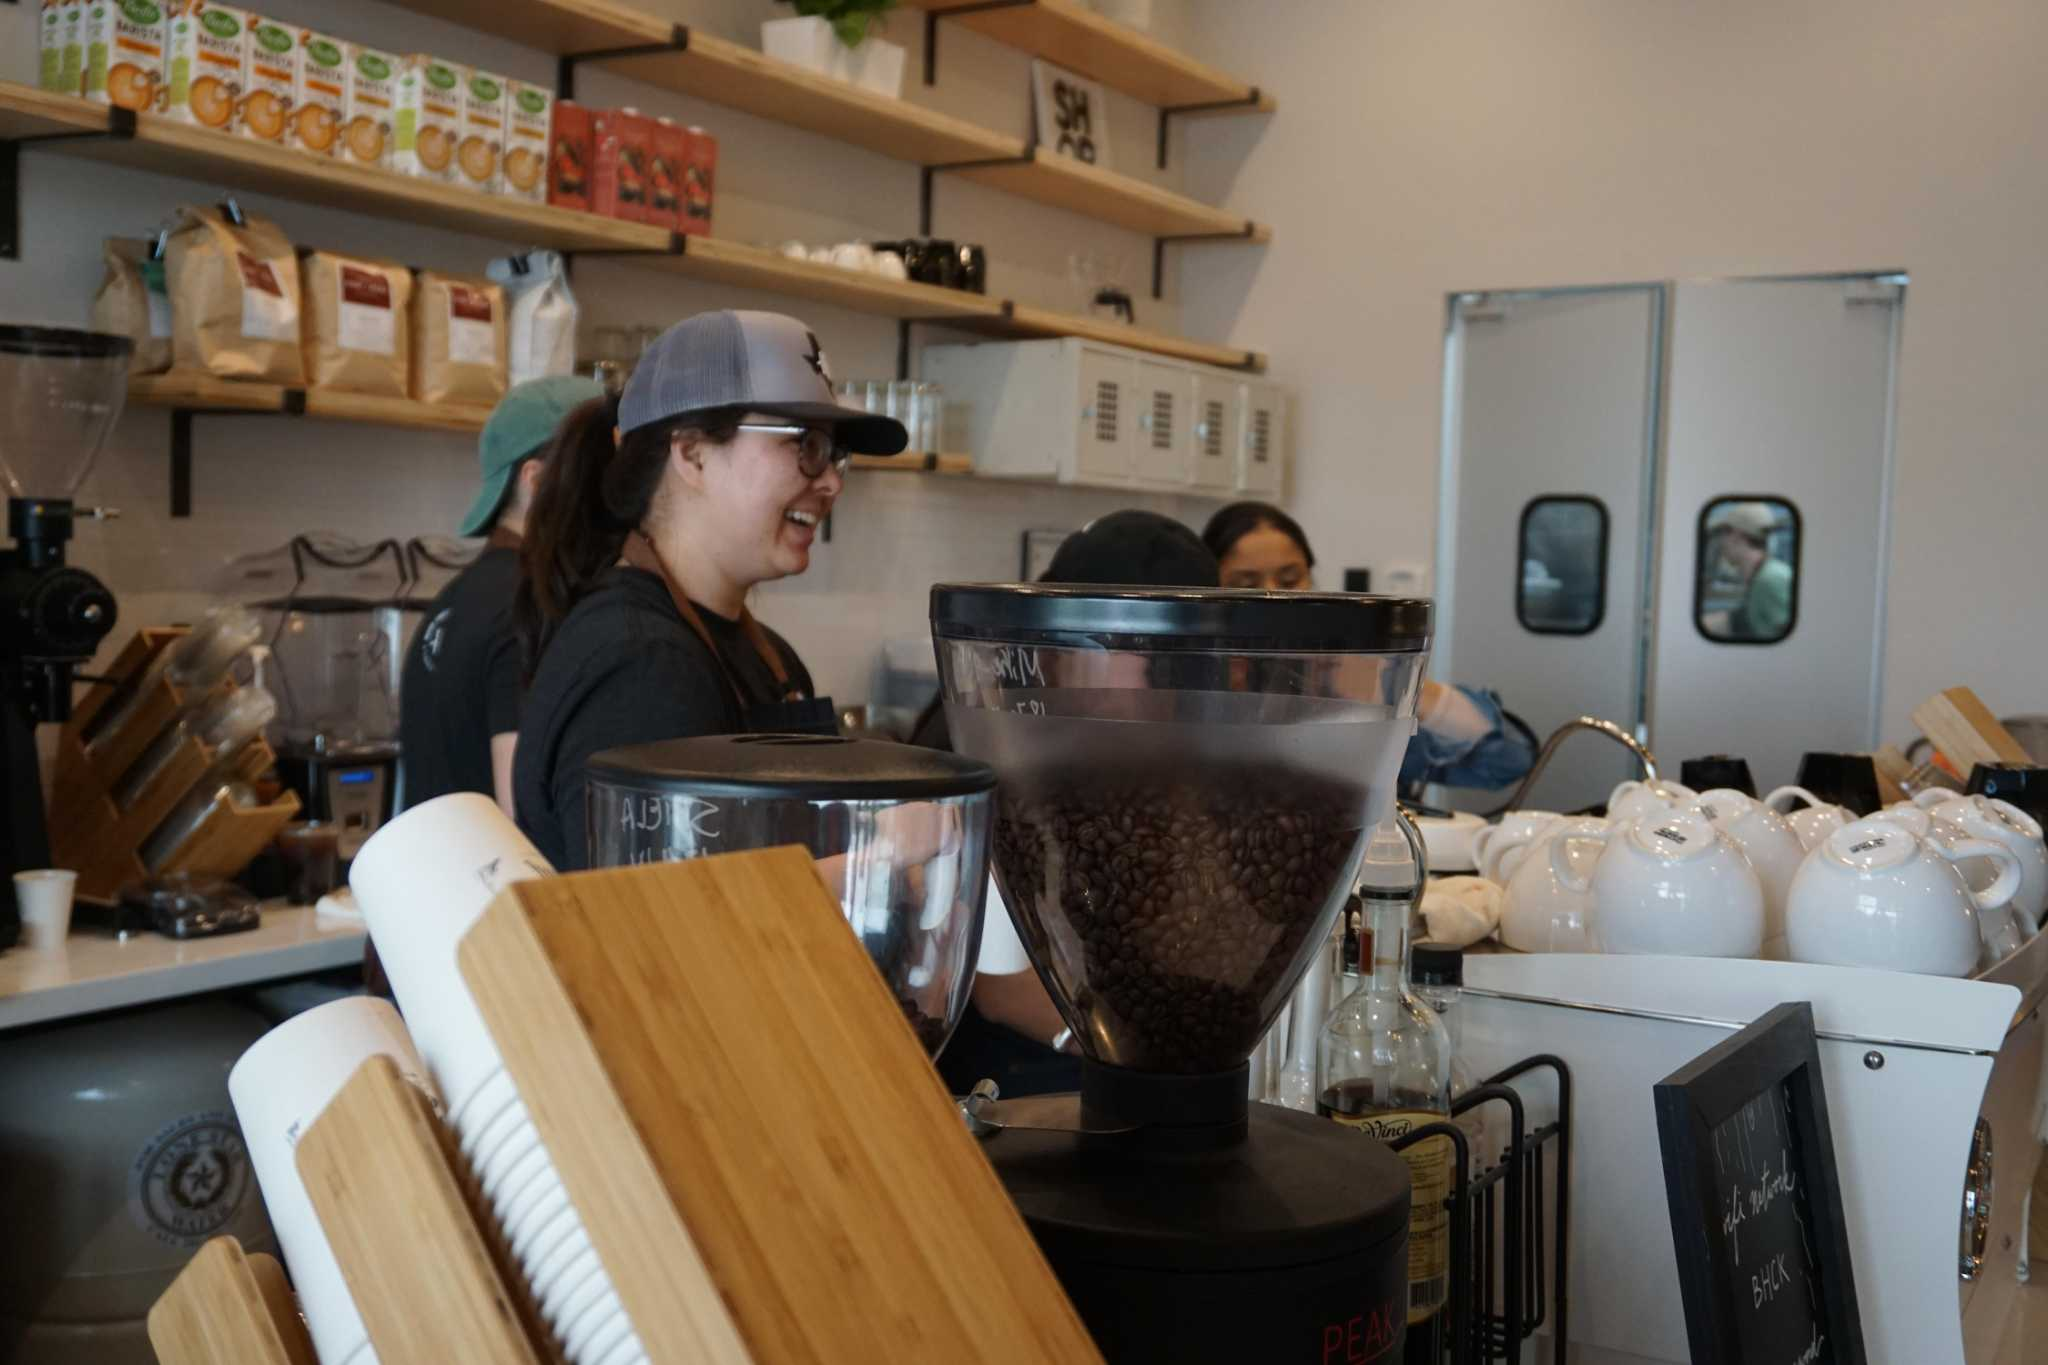 Blockhouse Coffee Kitchen In Katy Focuses On Family Community